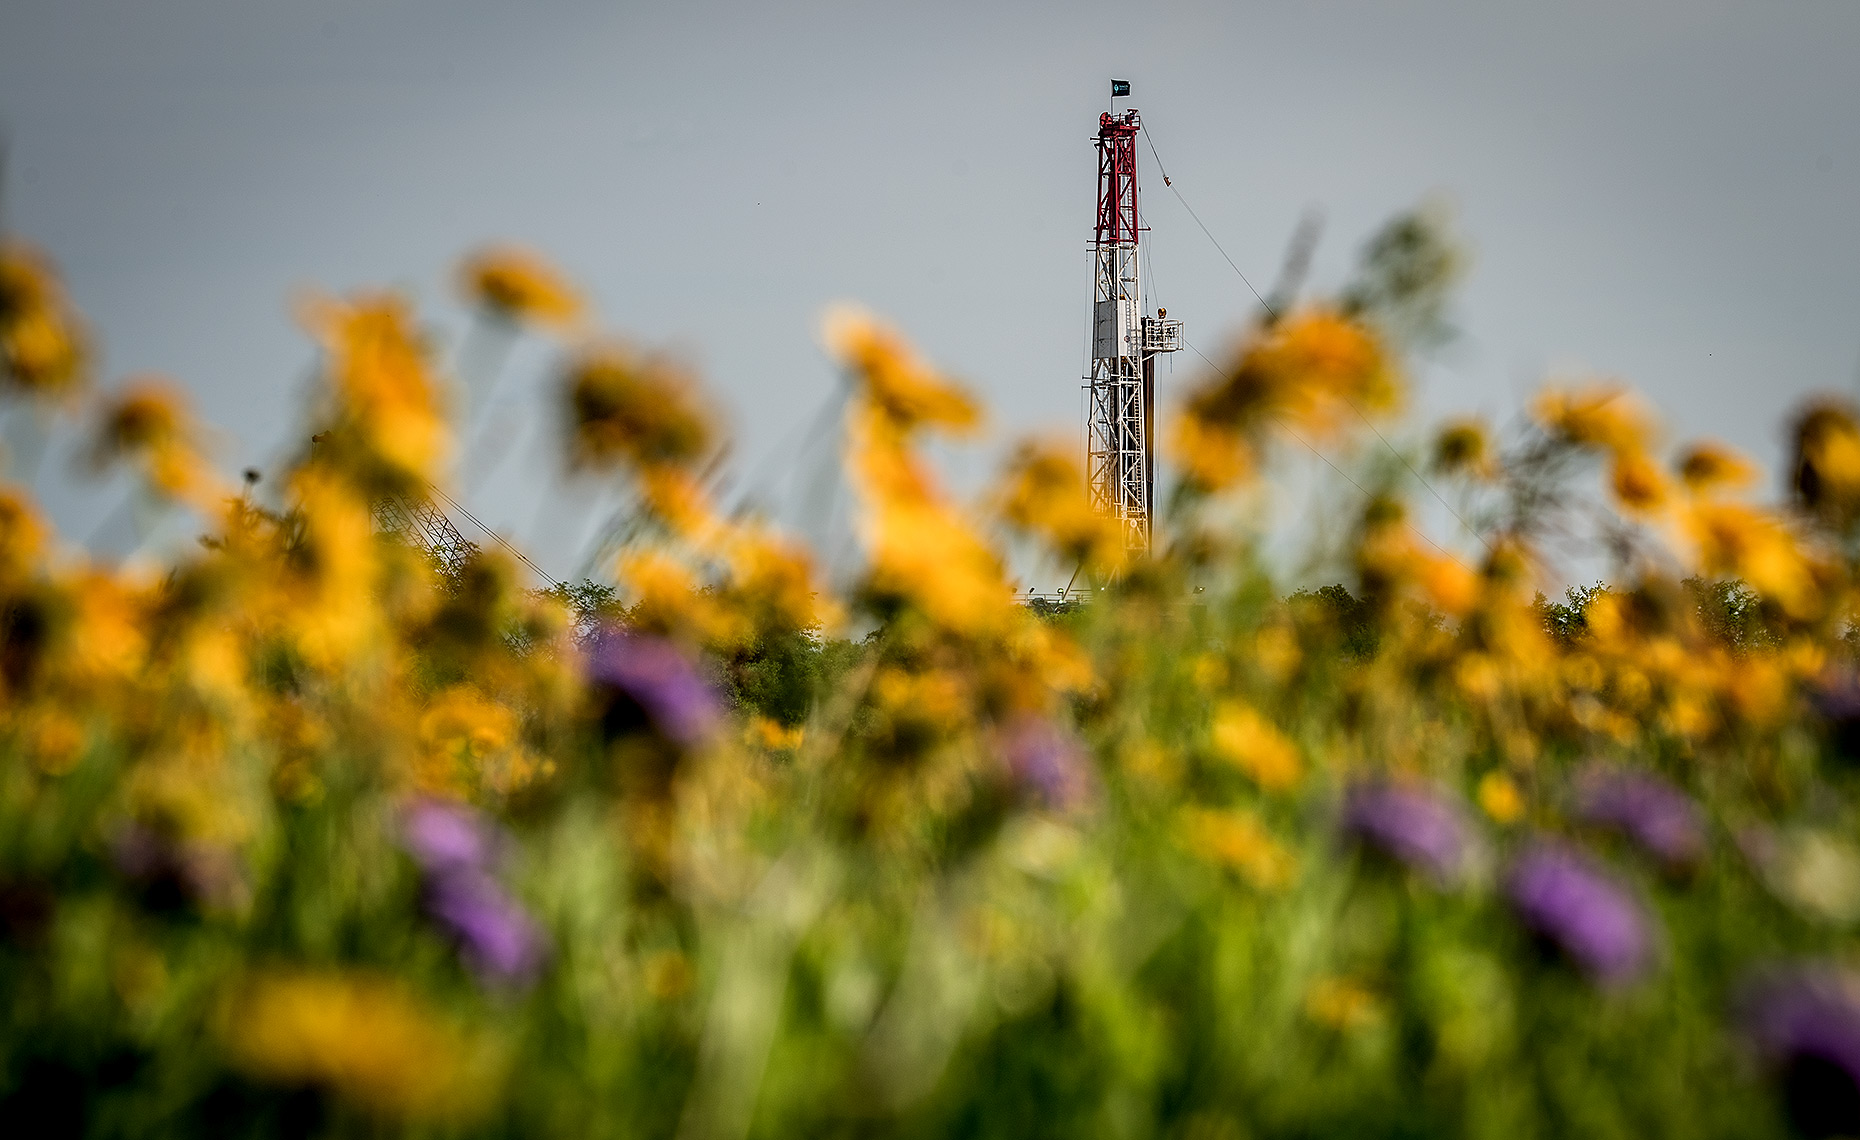 Flowers and Oil Drilling Rig Photo